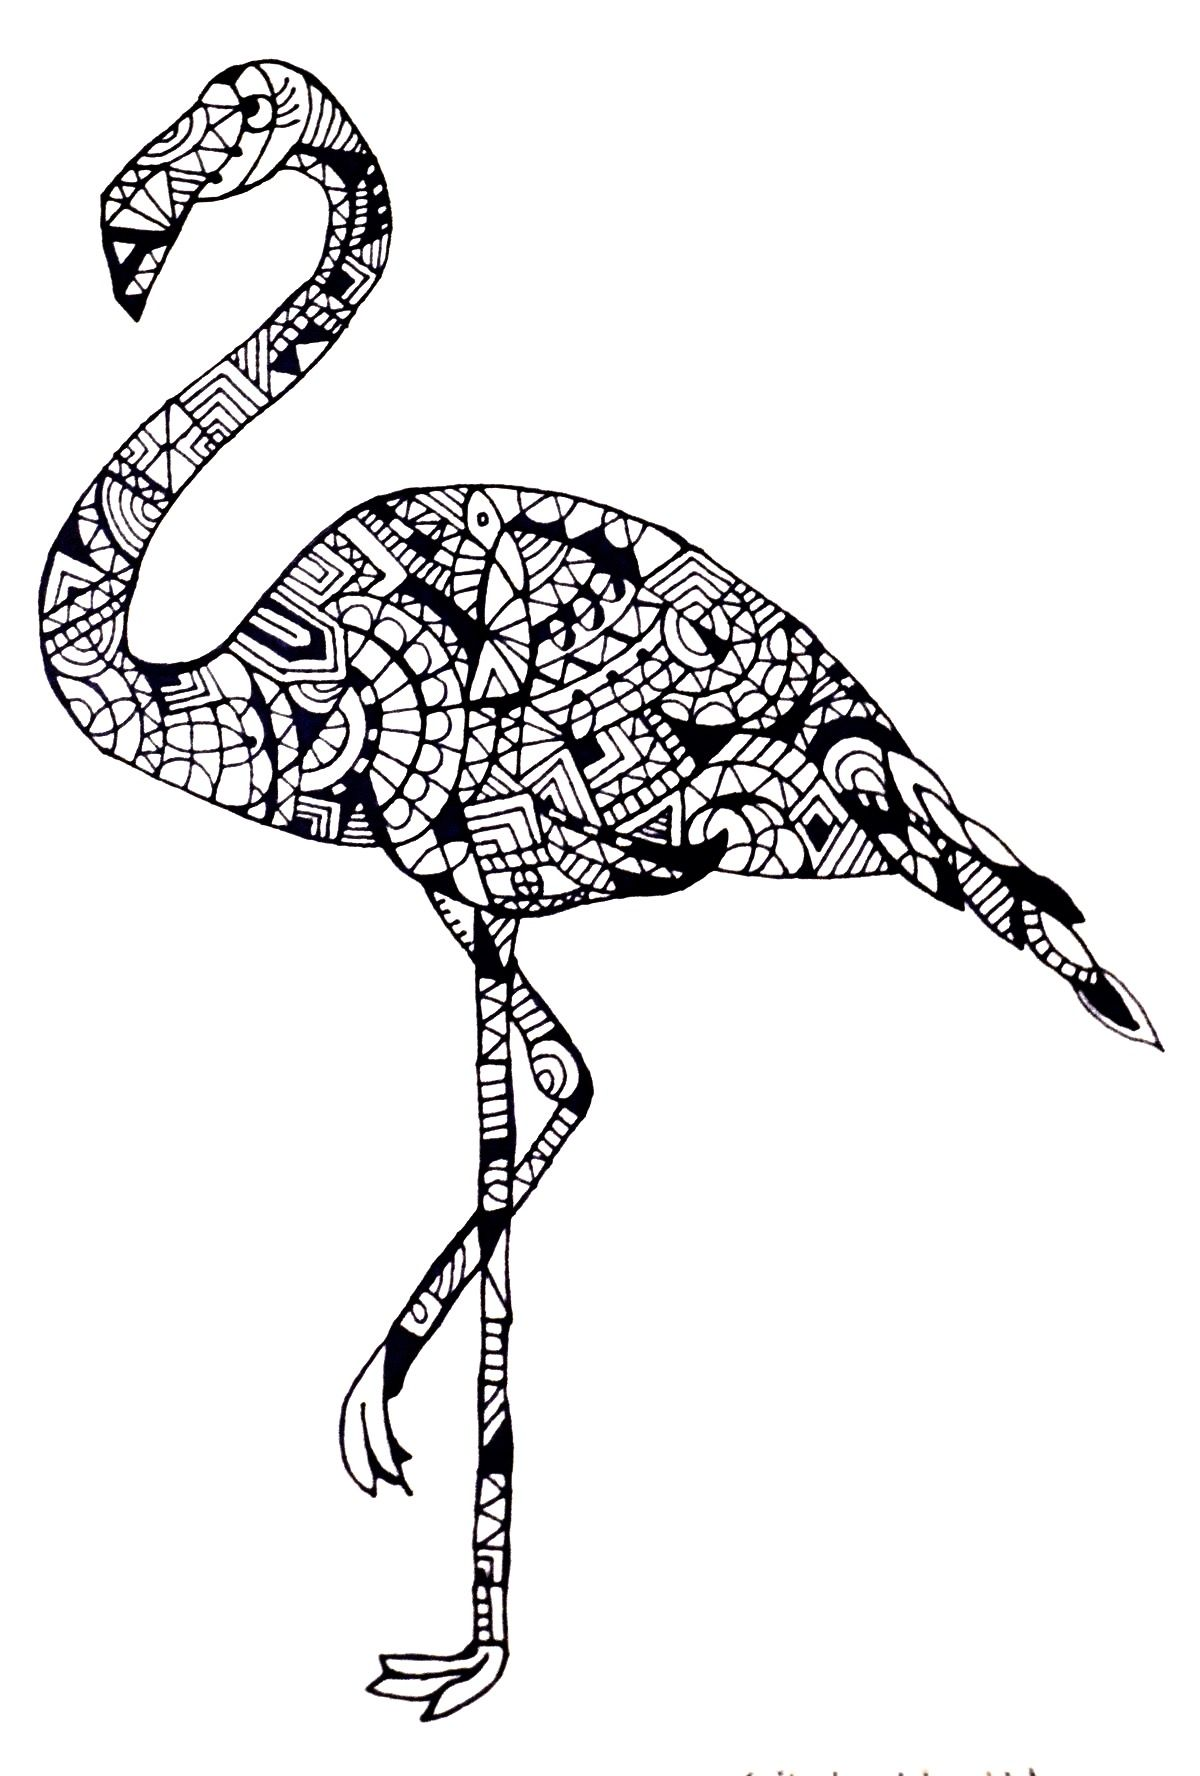 Coloring sheets for adults flamingo - Flamingo By Cecilie Wilsborg 2014